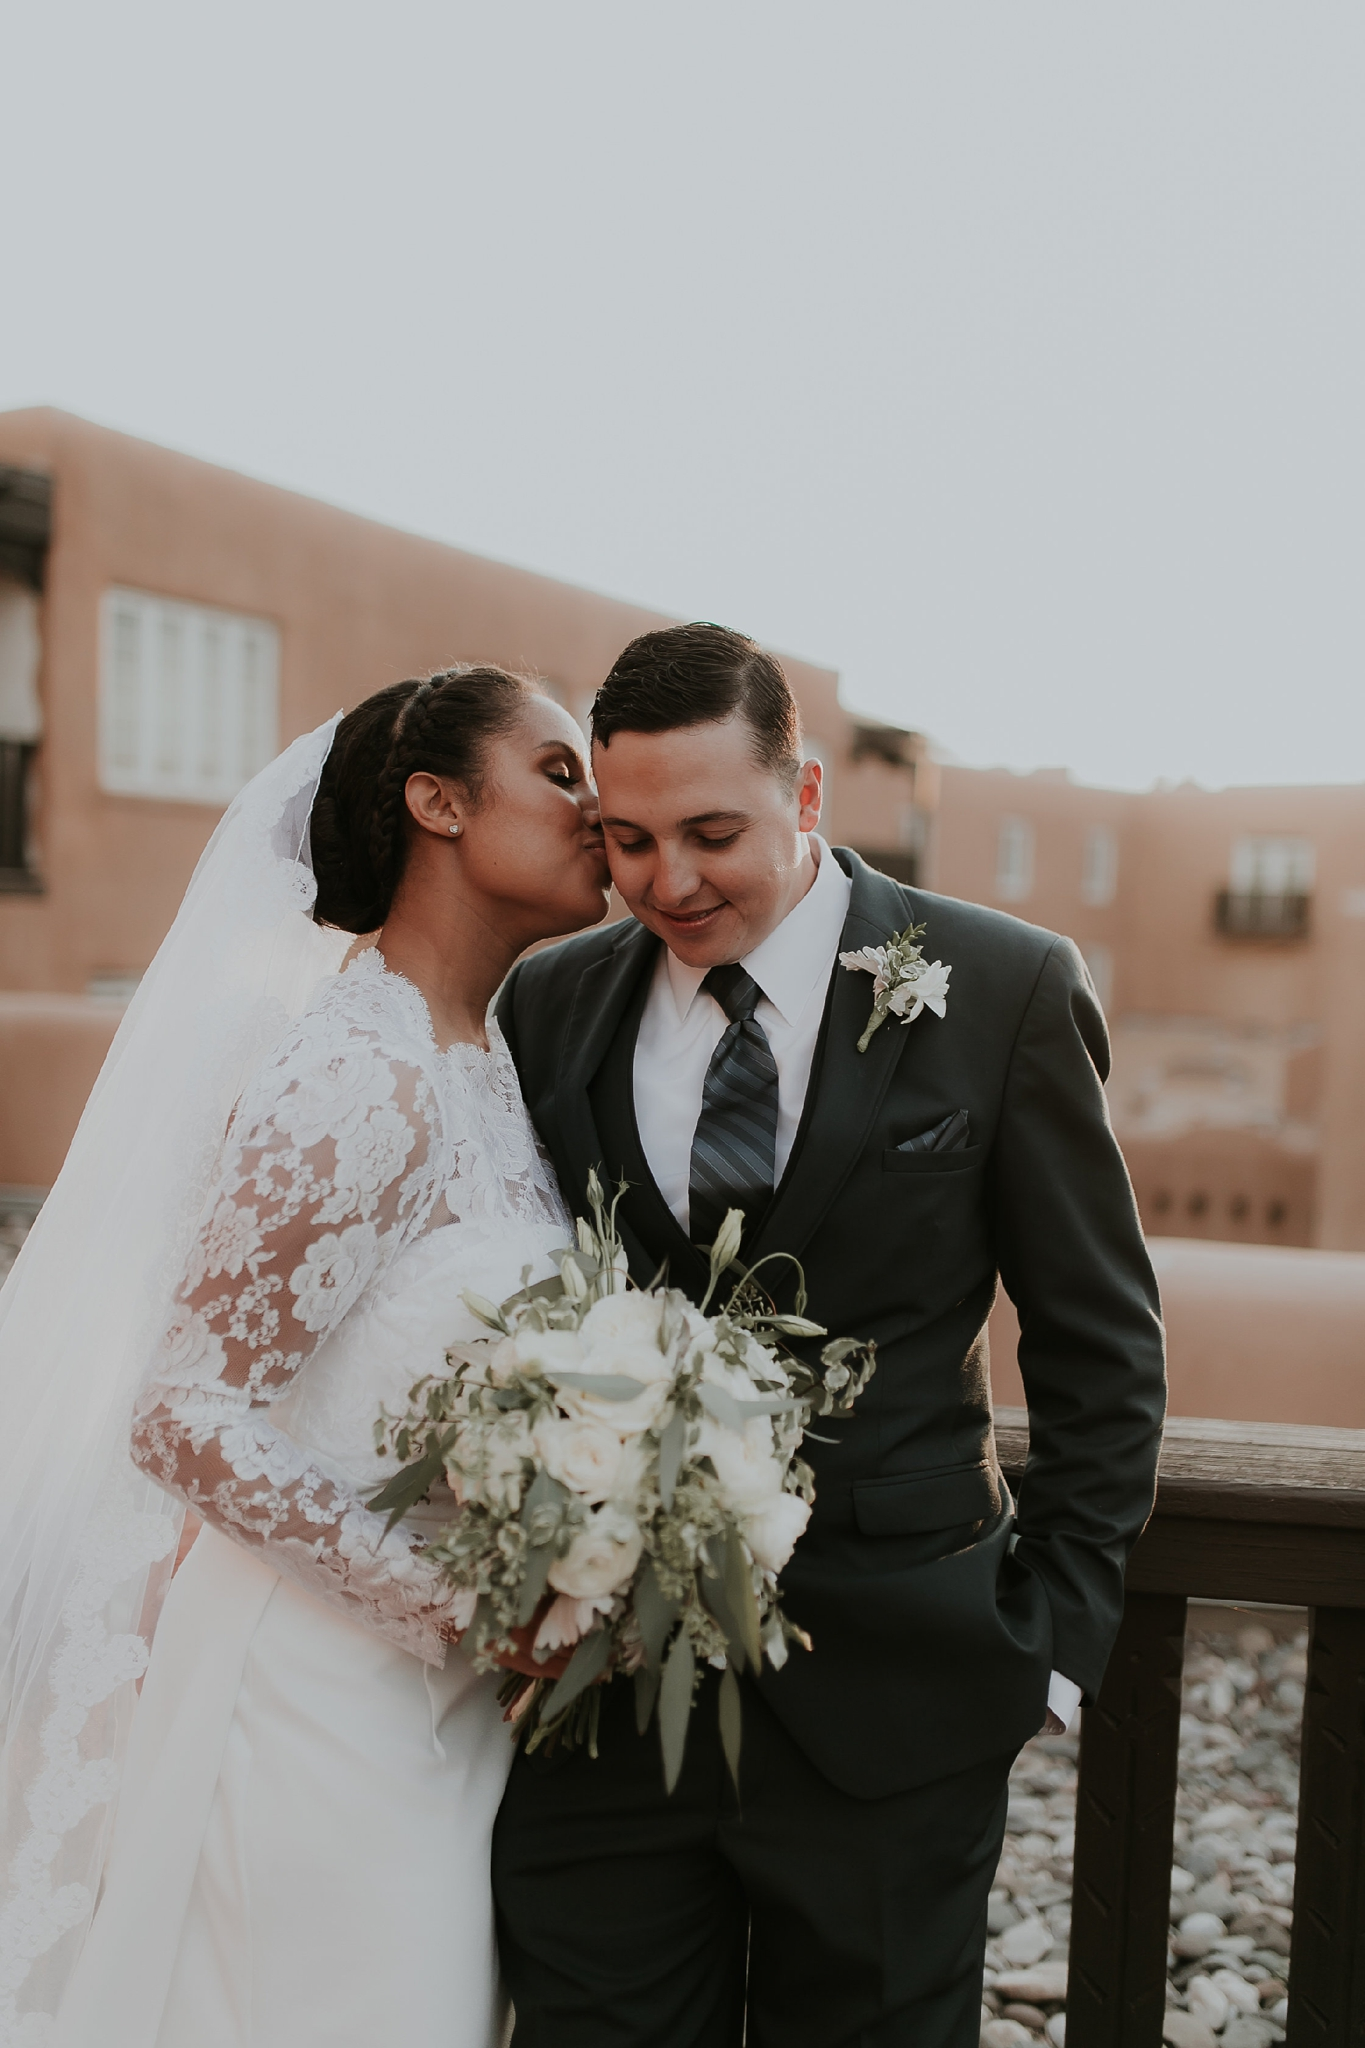 Alicia+lucia+photography+-+albuquerque+wedding+photographer+-+santa+fe+wedding+photography+-+new+mexico+wedding+photographer+-+new+mexico+wedding+-+albuquerque+wedding+-+santa+fe+wedding+-+wedding+romantics_0026.jpg